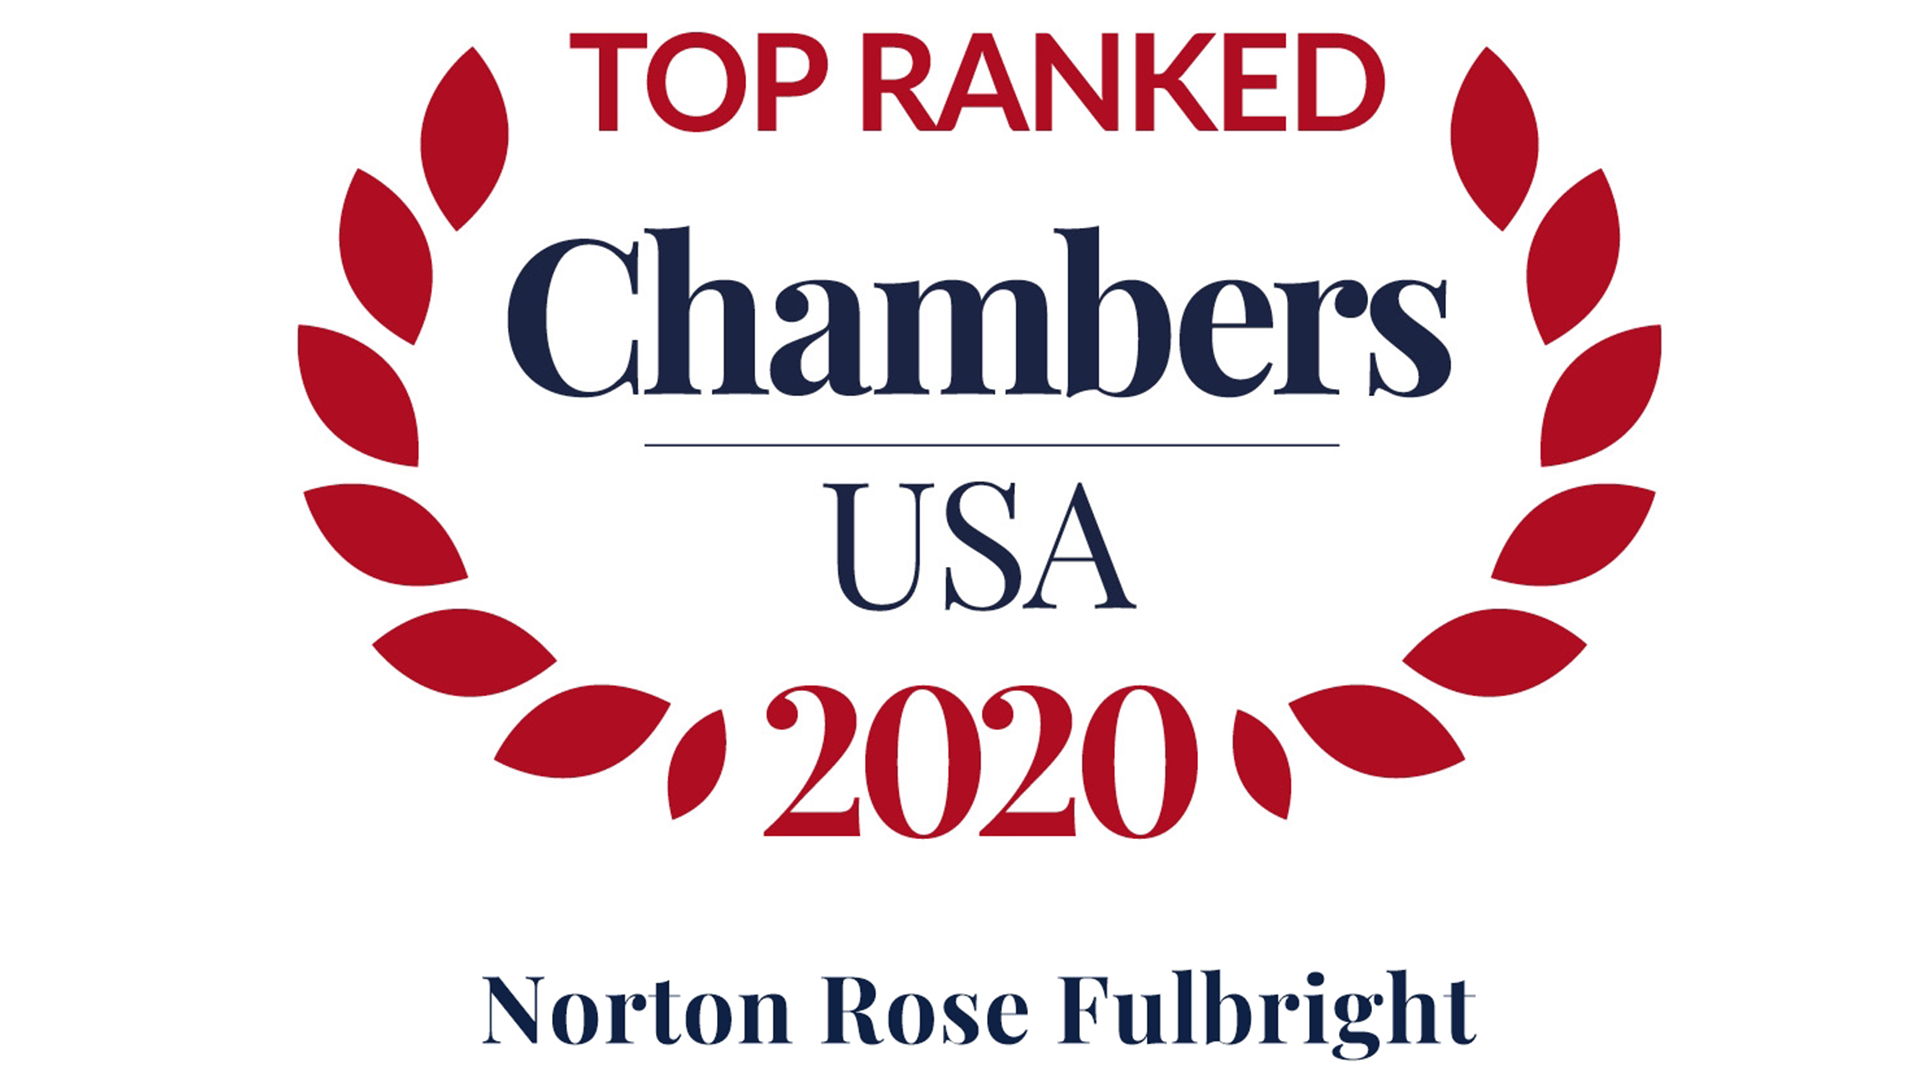 Top ranked Chambers USA 2020